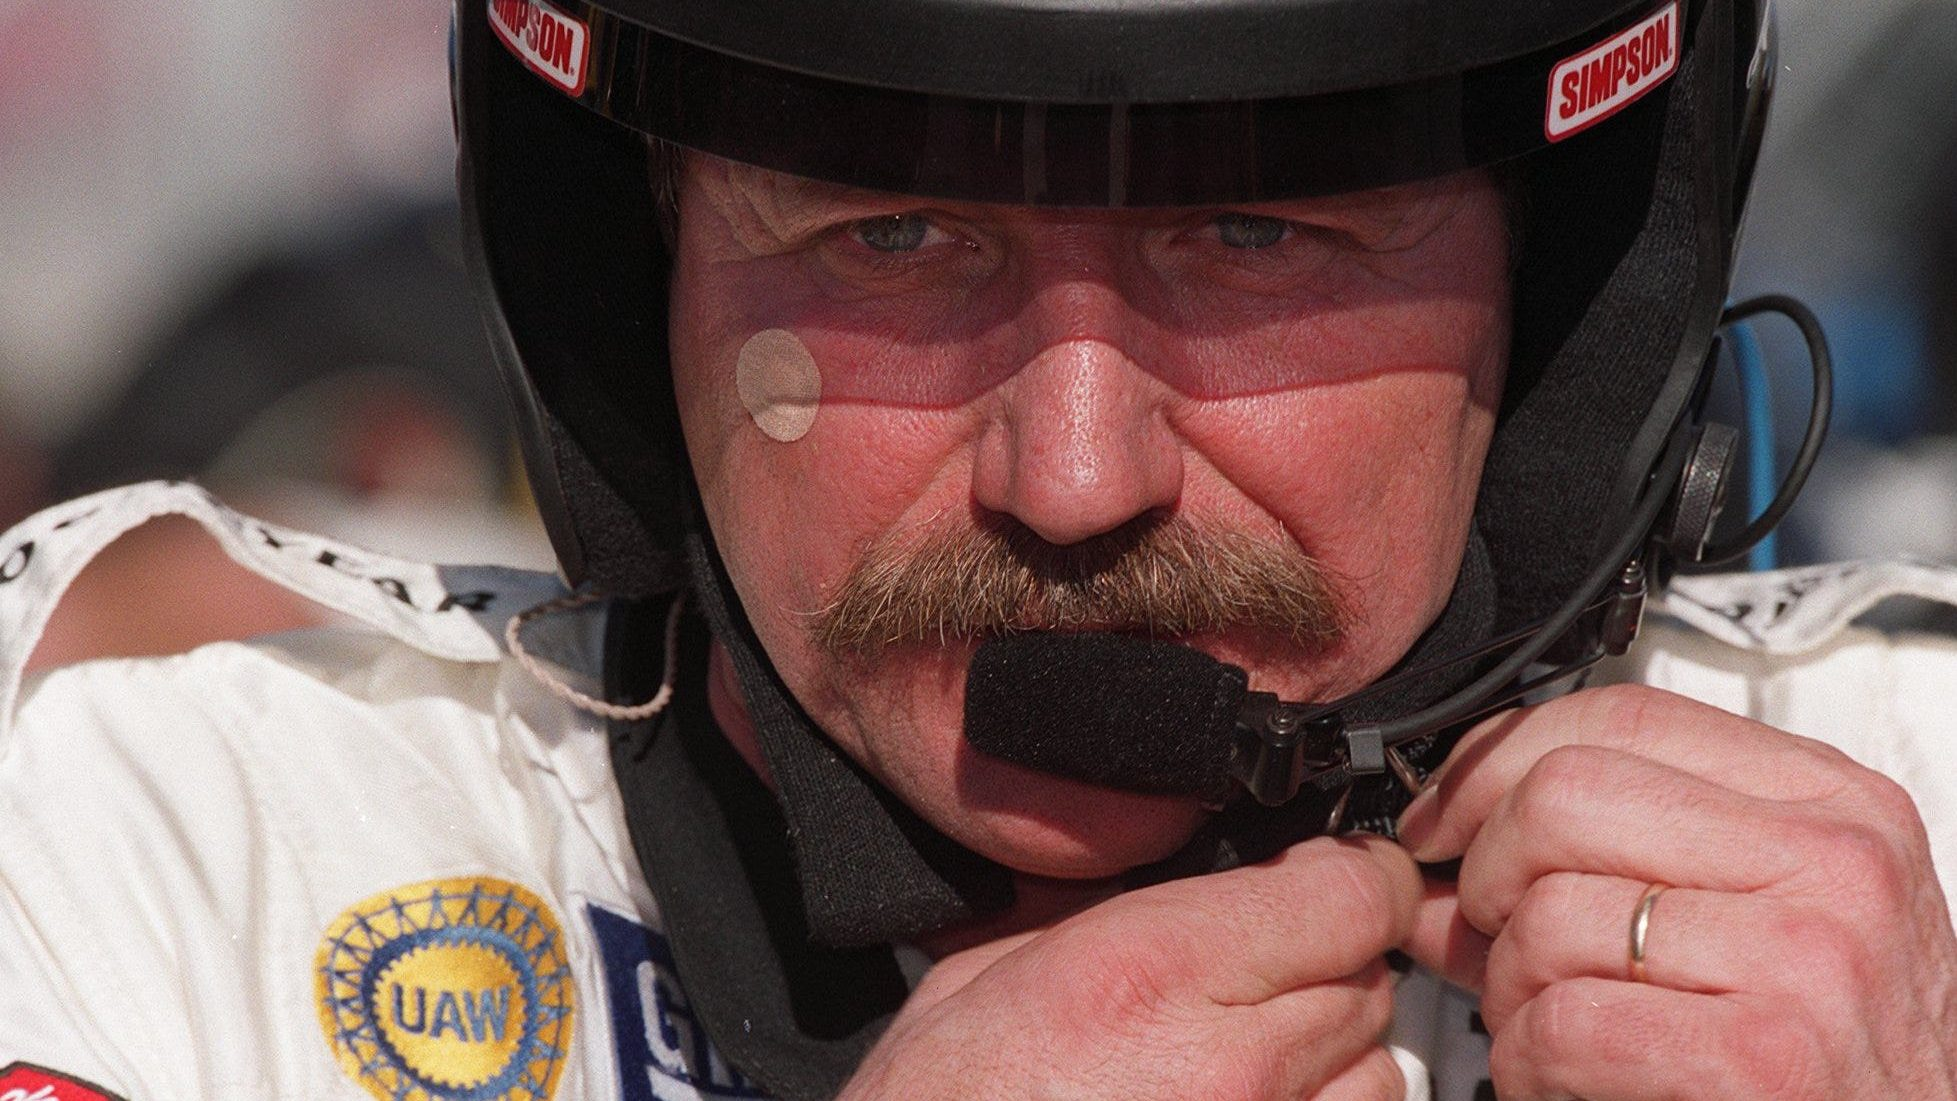 What it was like racing Dale Earnhardt: Recalling 'The Intimidator' on the track